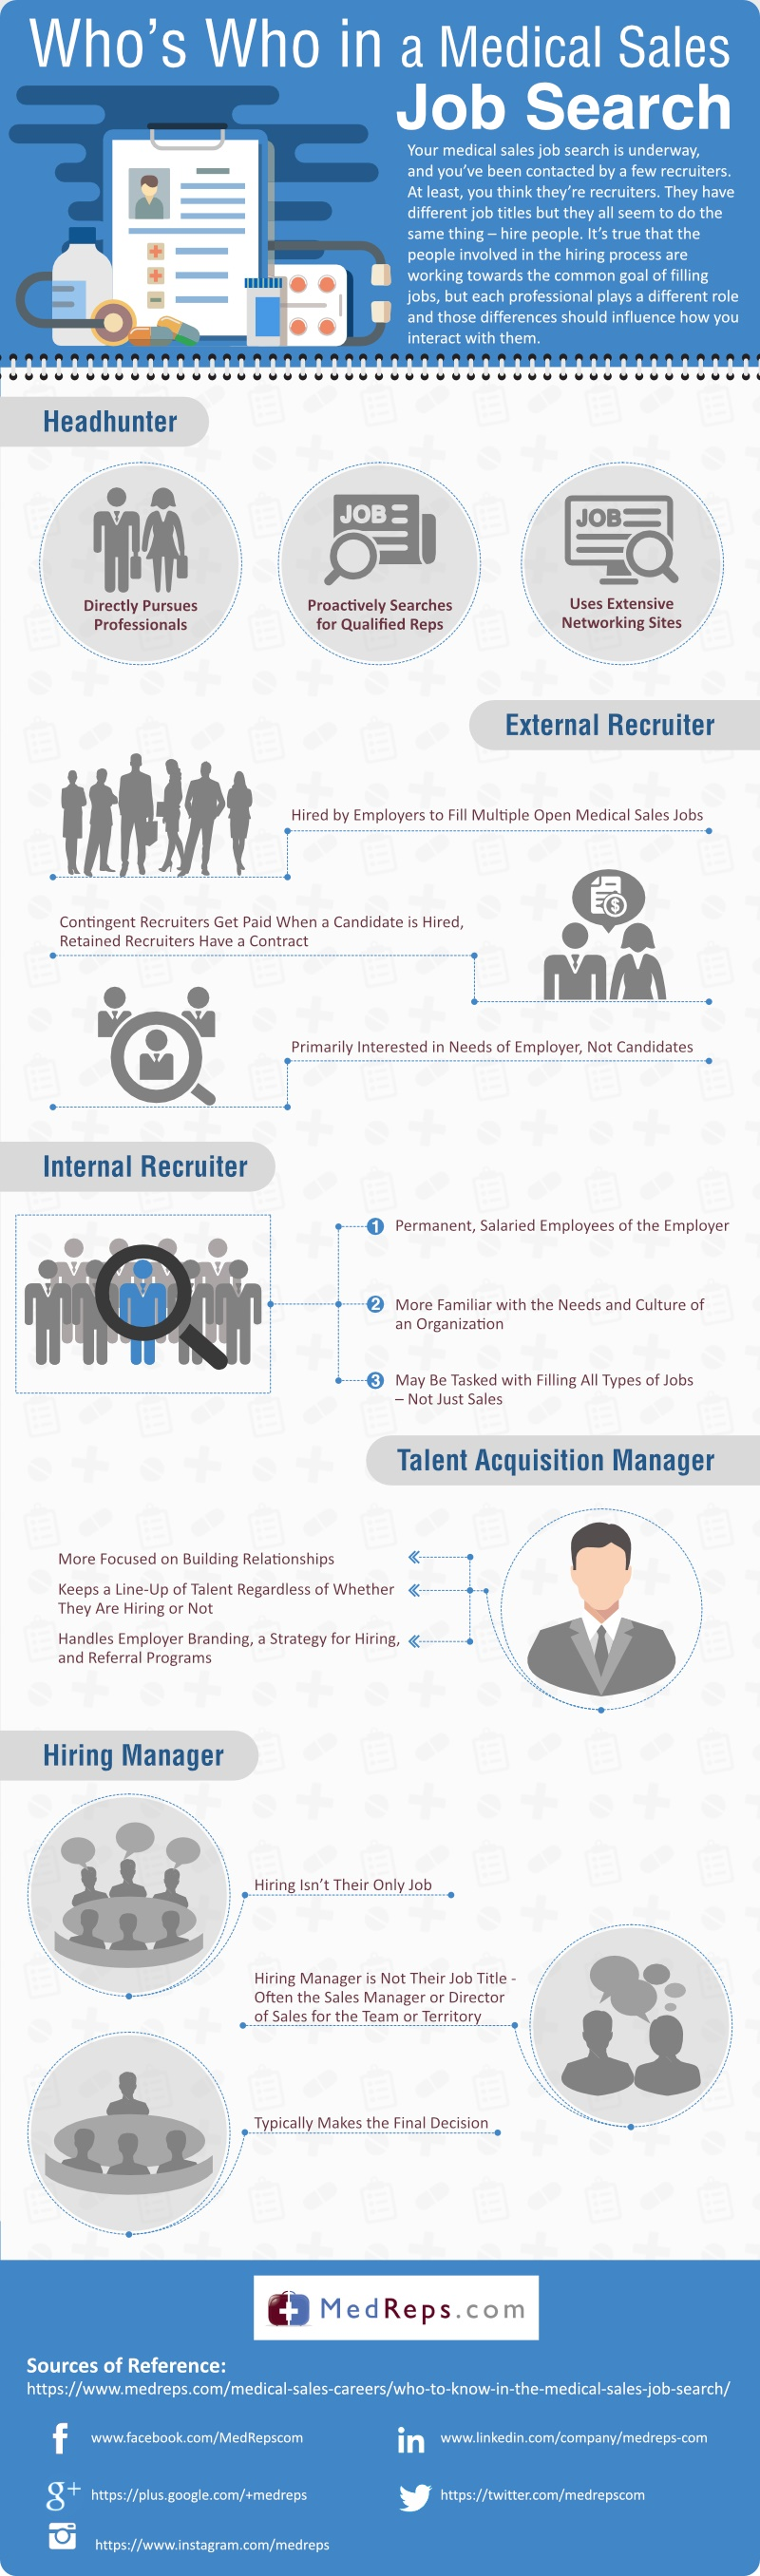 Who S Who In A Medical Sales Job Search Medreps Jobsearch Advice Sales Jobs Medical Sales Medical Sales Jobs